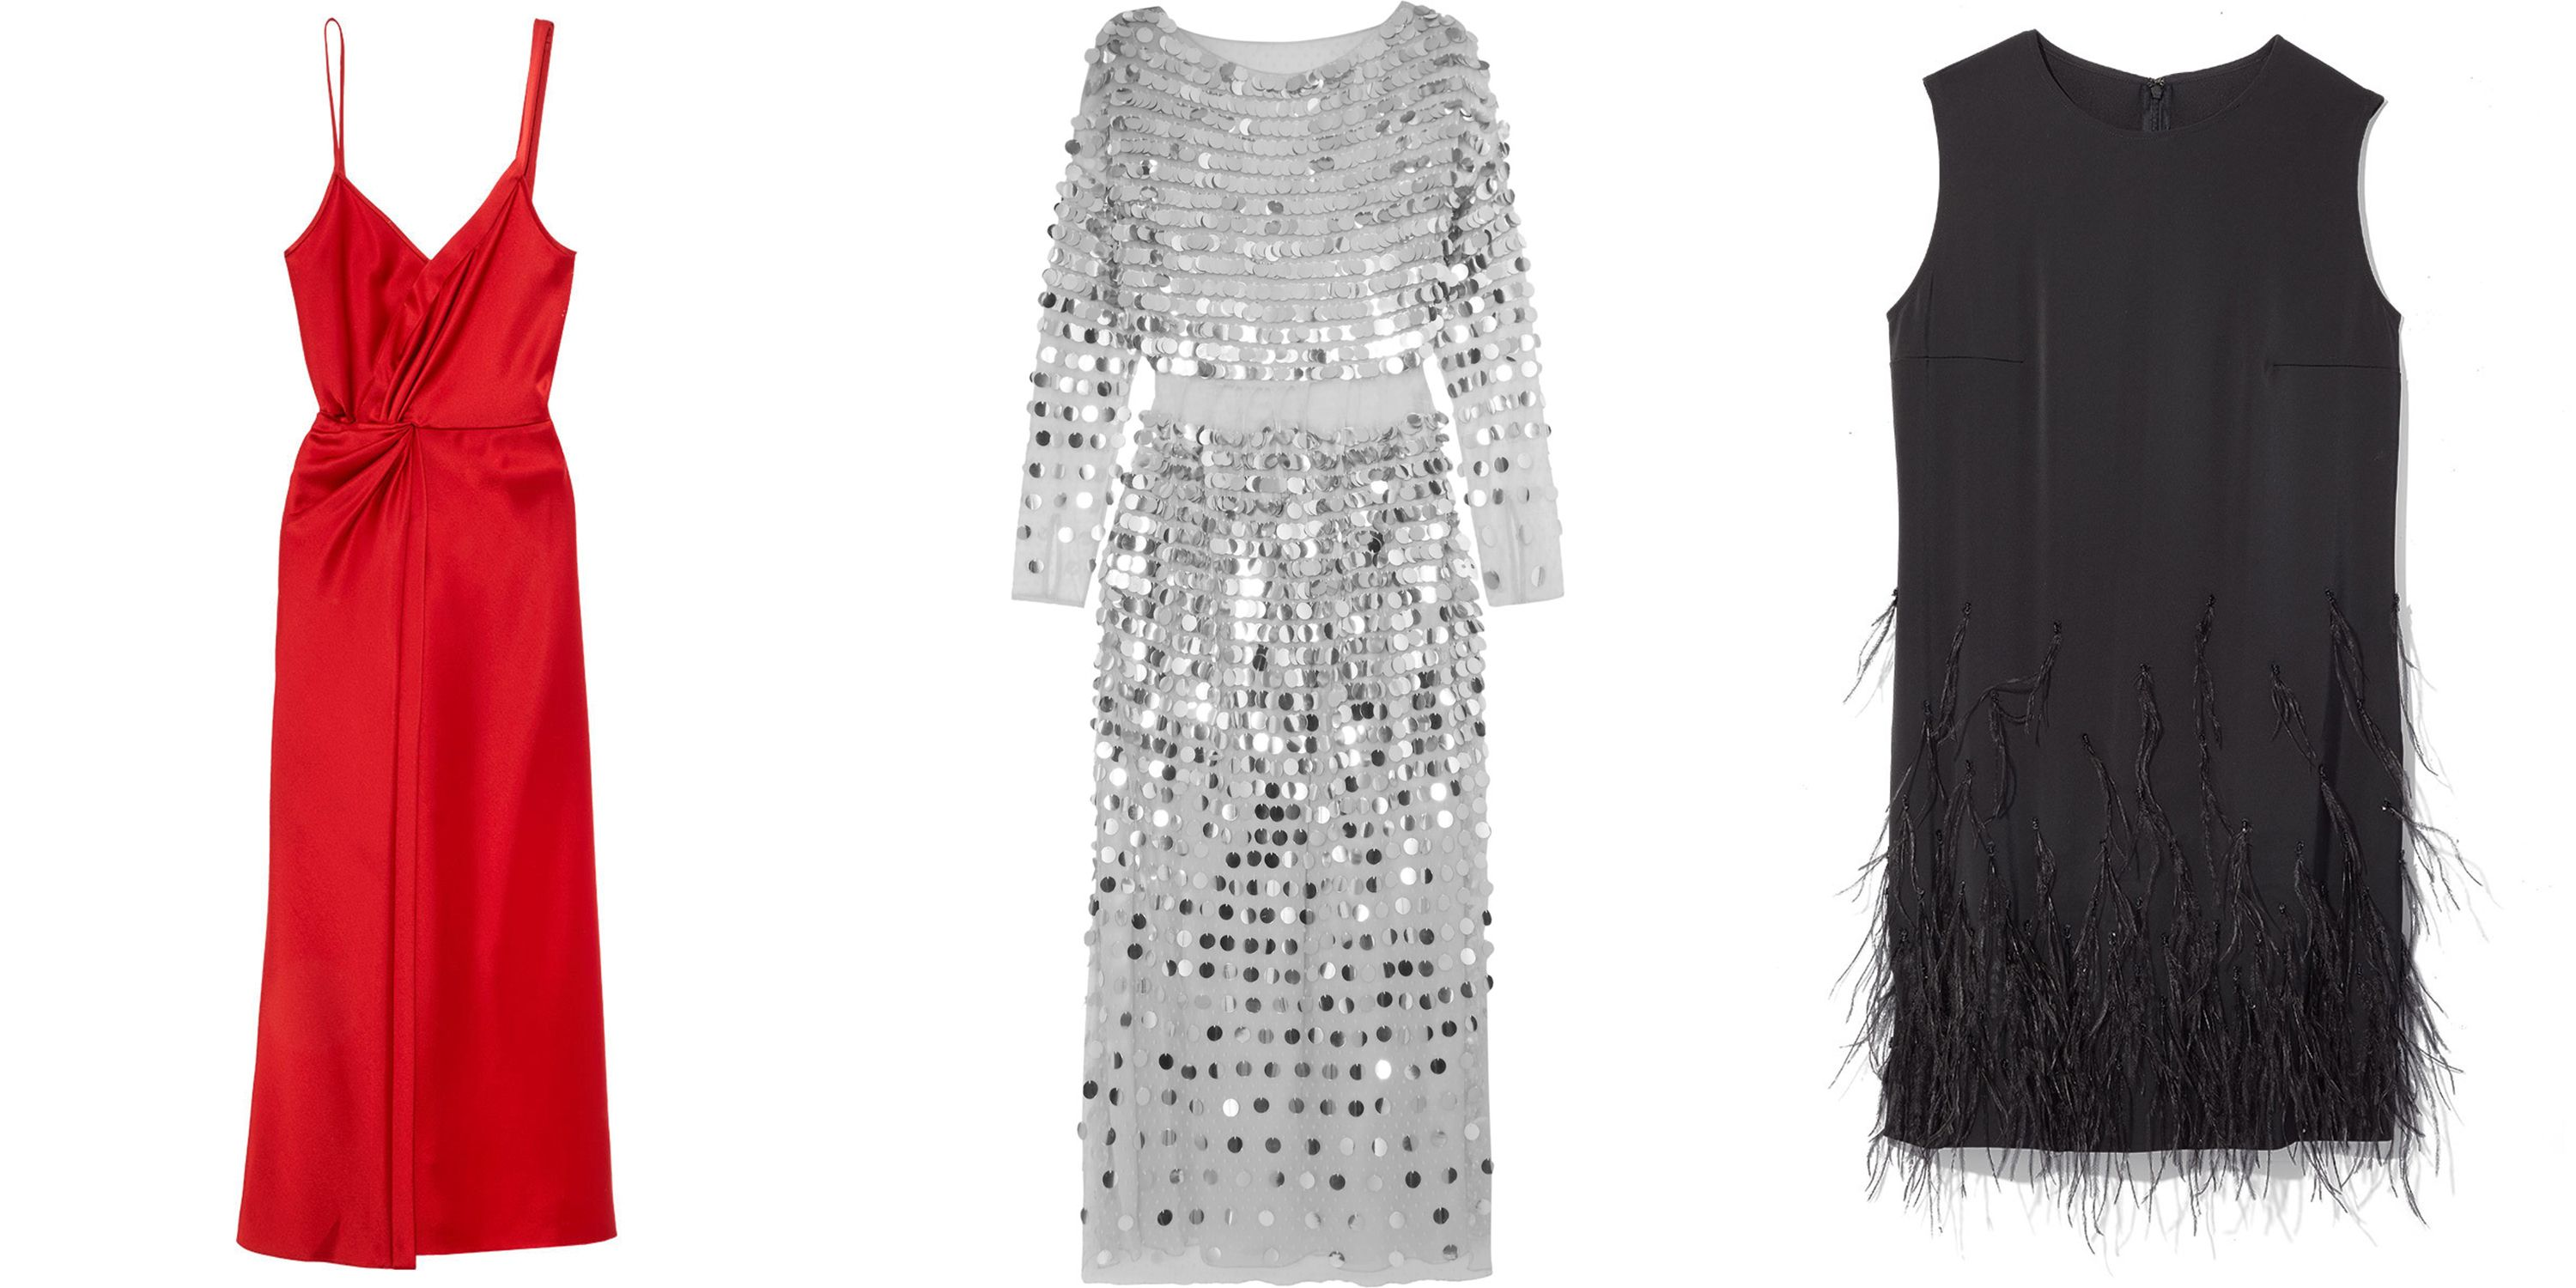 25 Festive Holiday Cocktail Dresses To Shop At Every Price Point